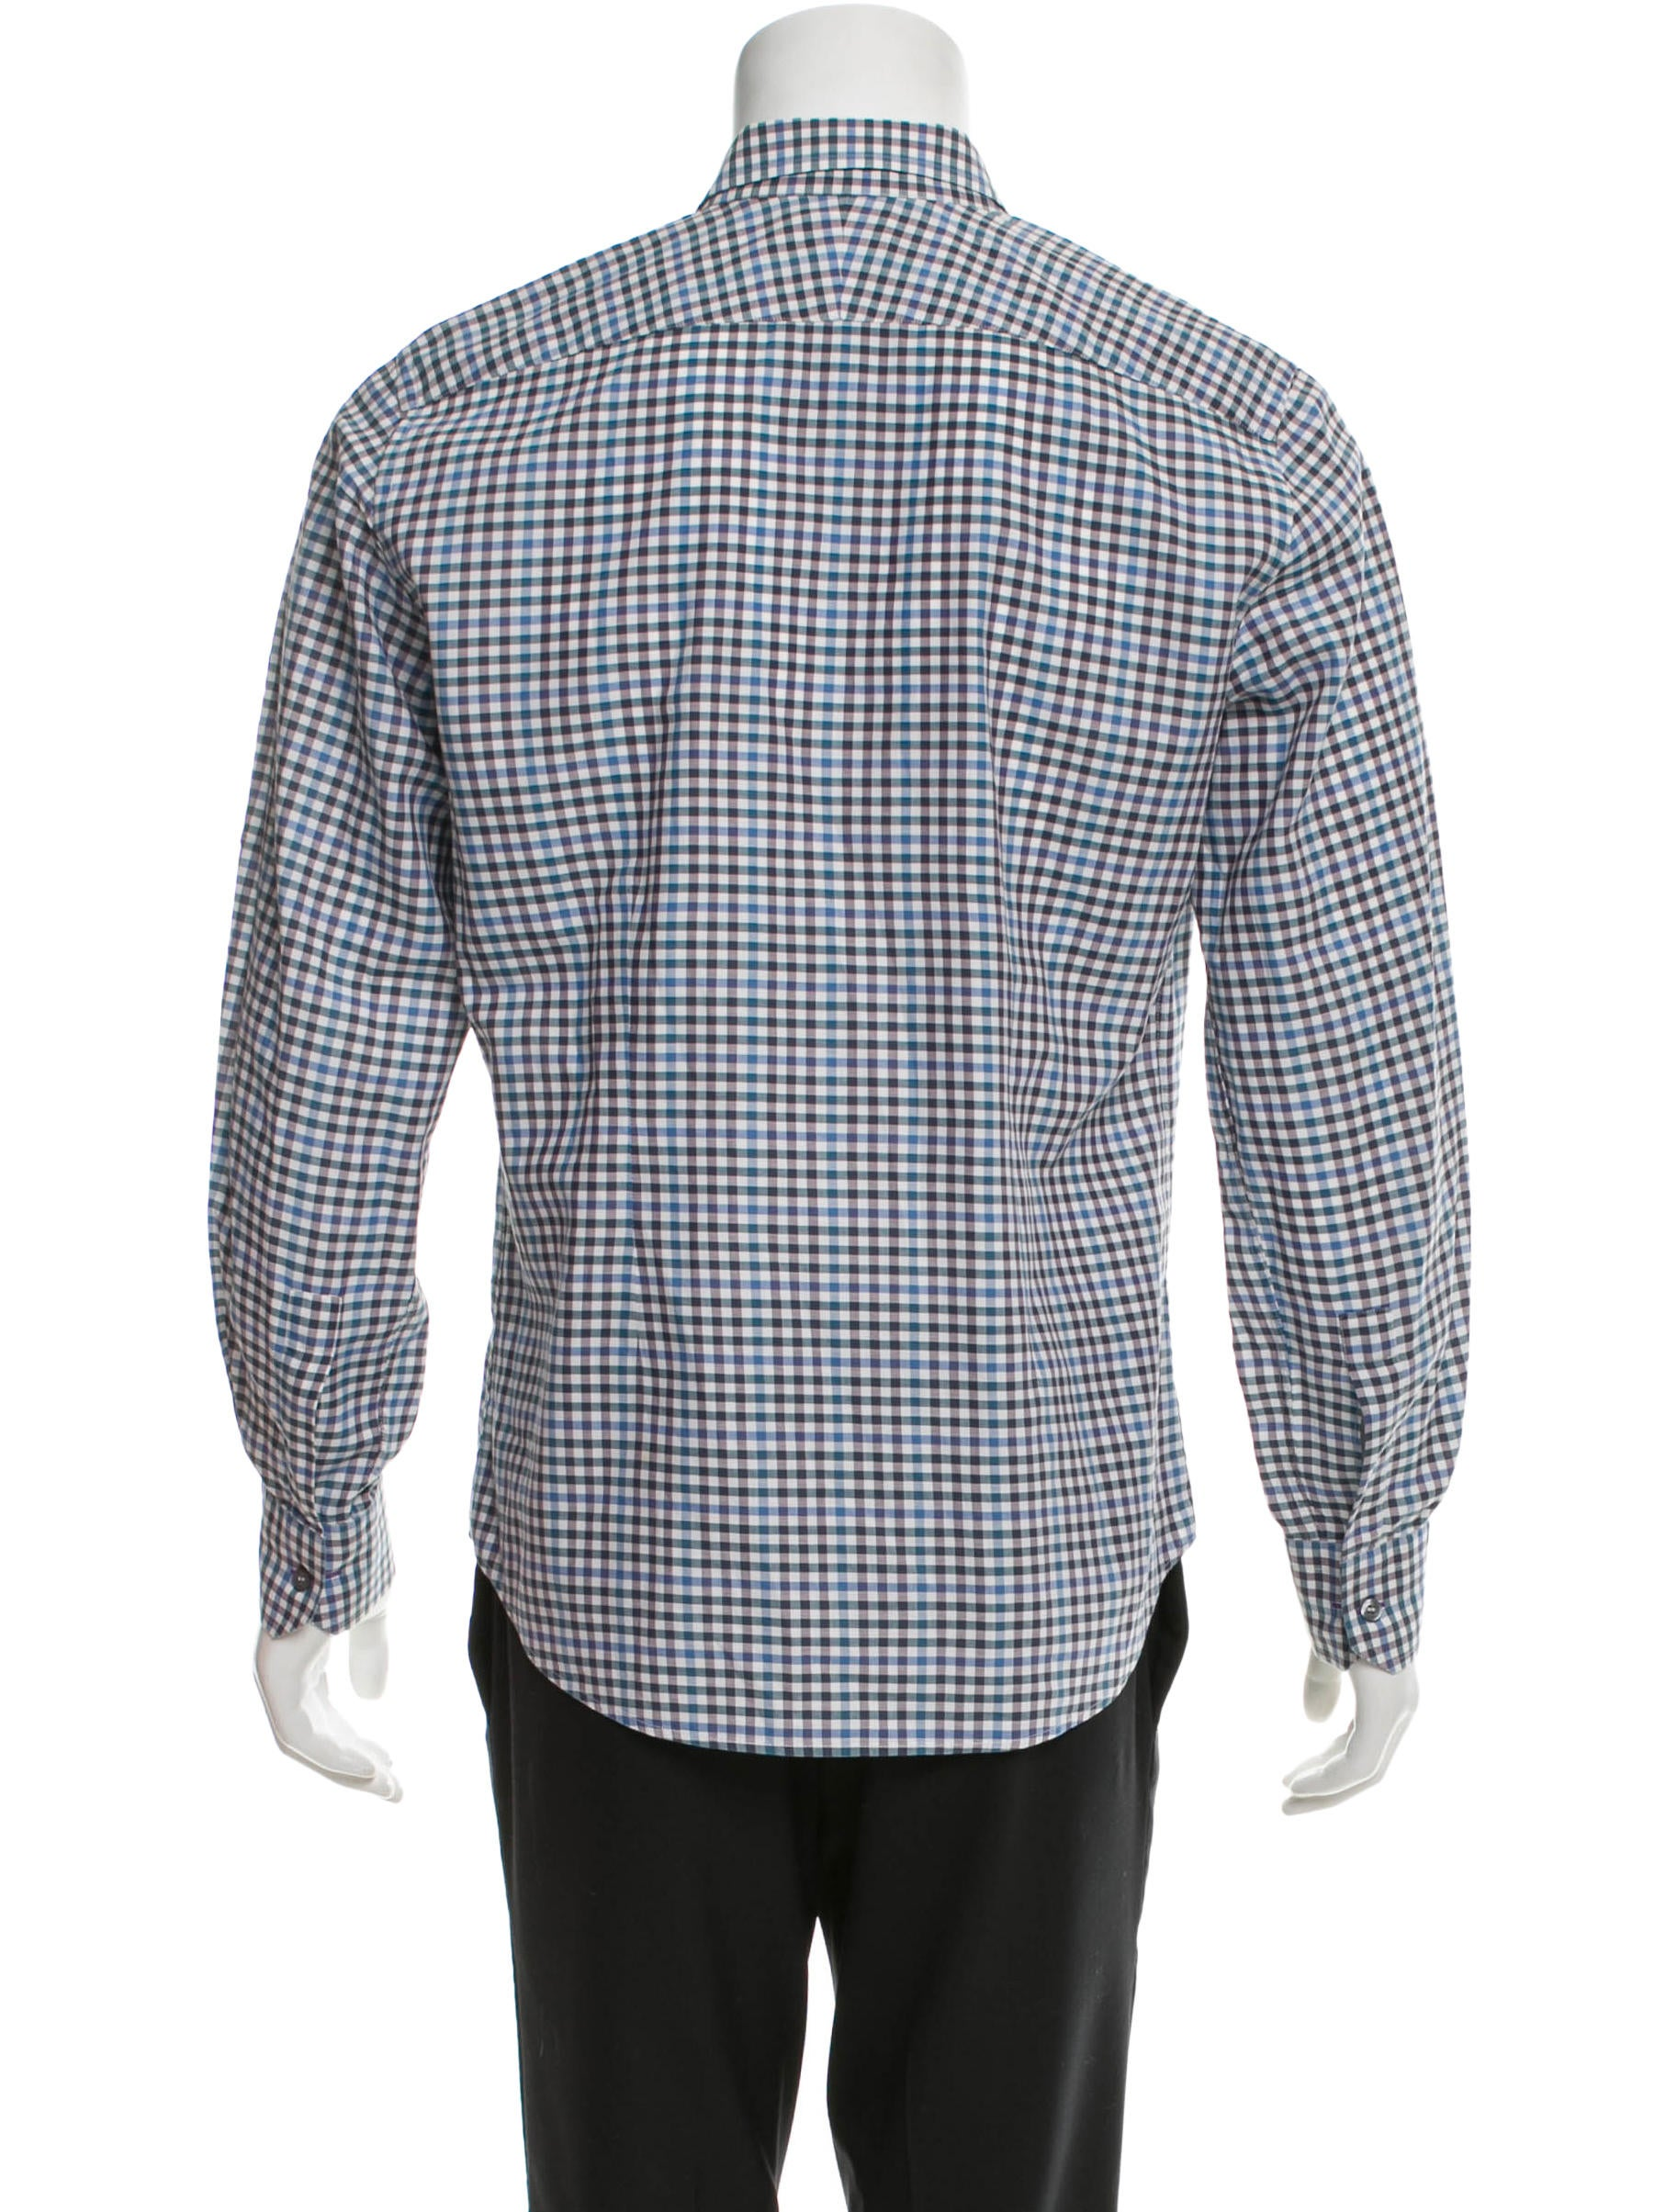 Paul smith plaid button up shirt clothing wps21690 for Purple plaid button up shirt